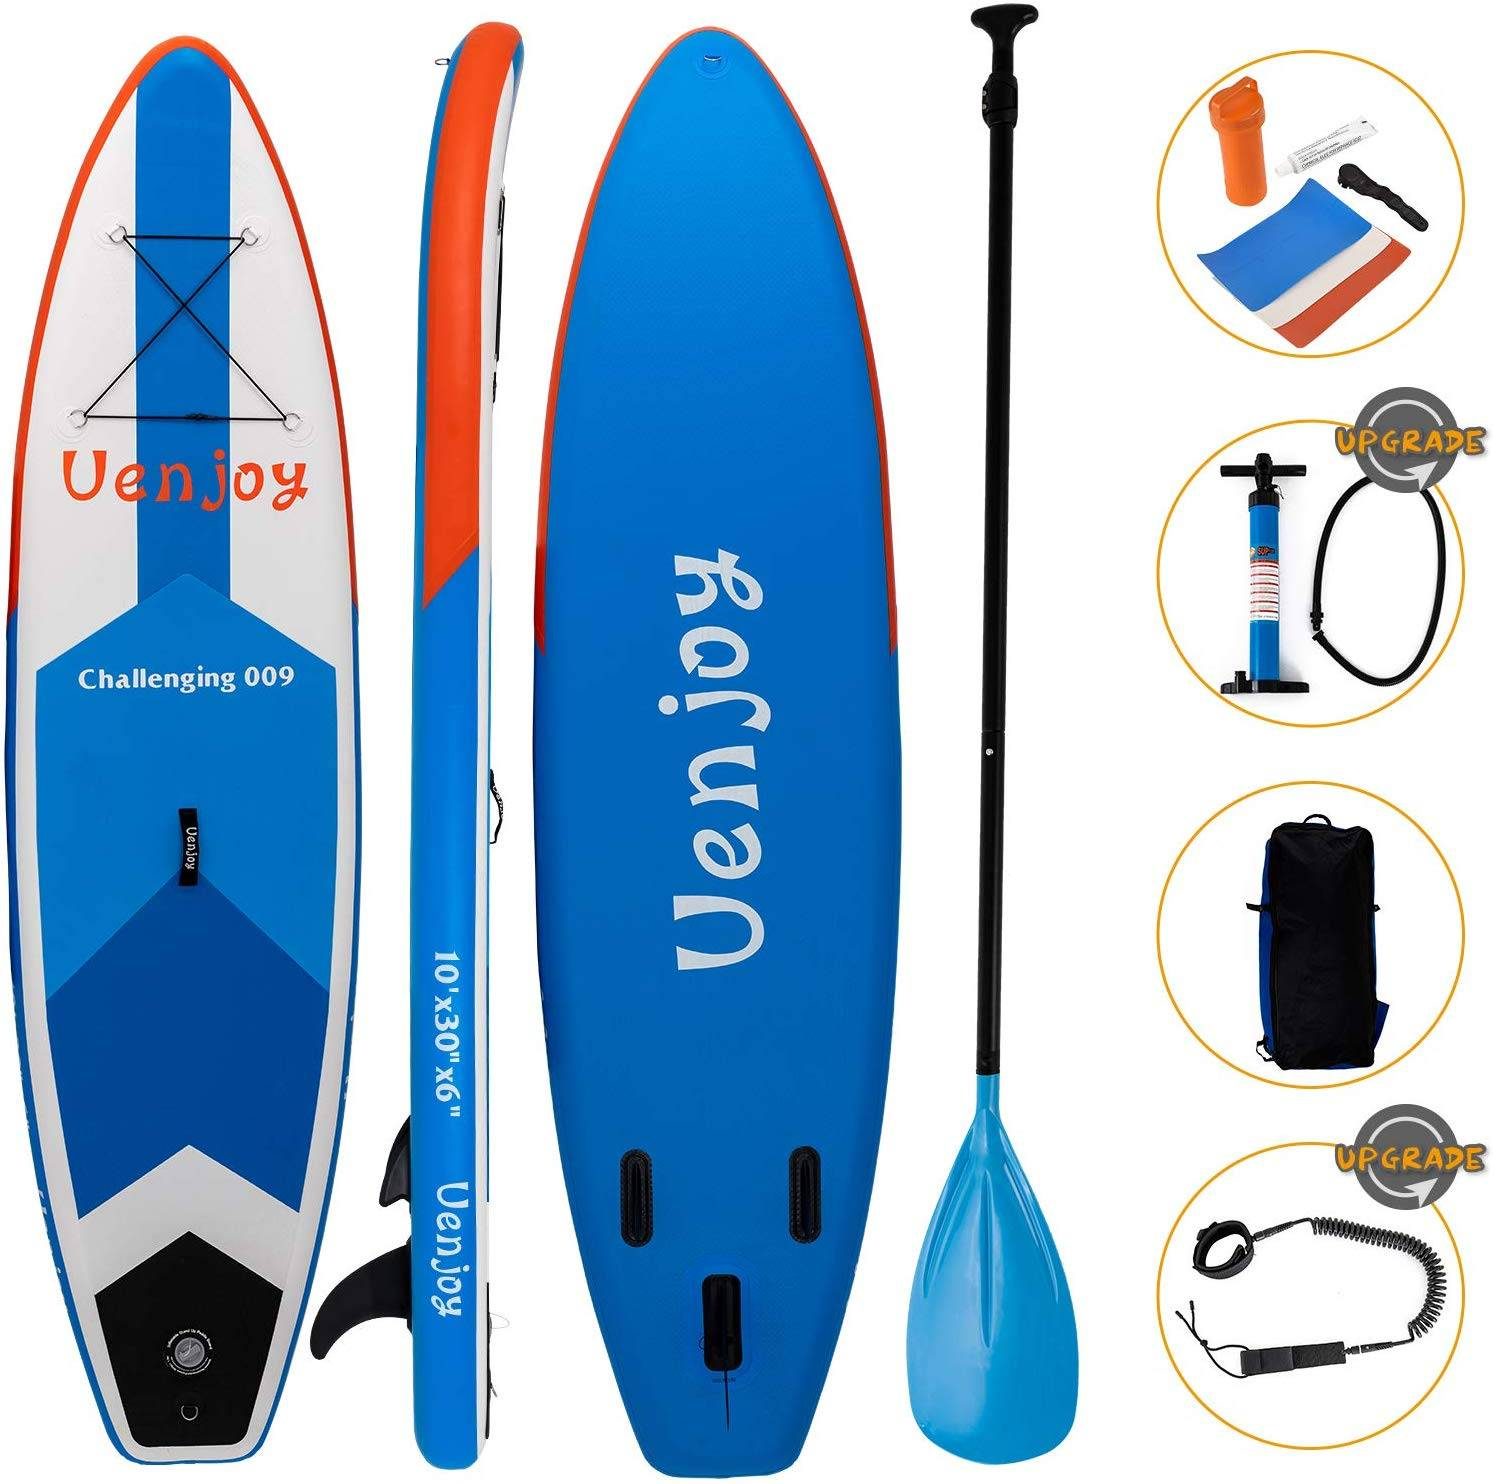 Uenjoy Inflatable Sup Around Paddle Board